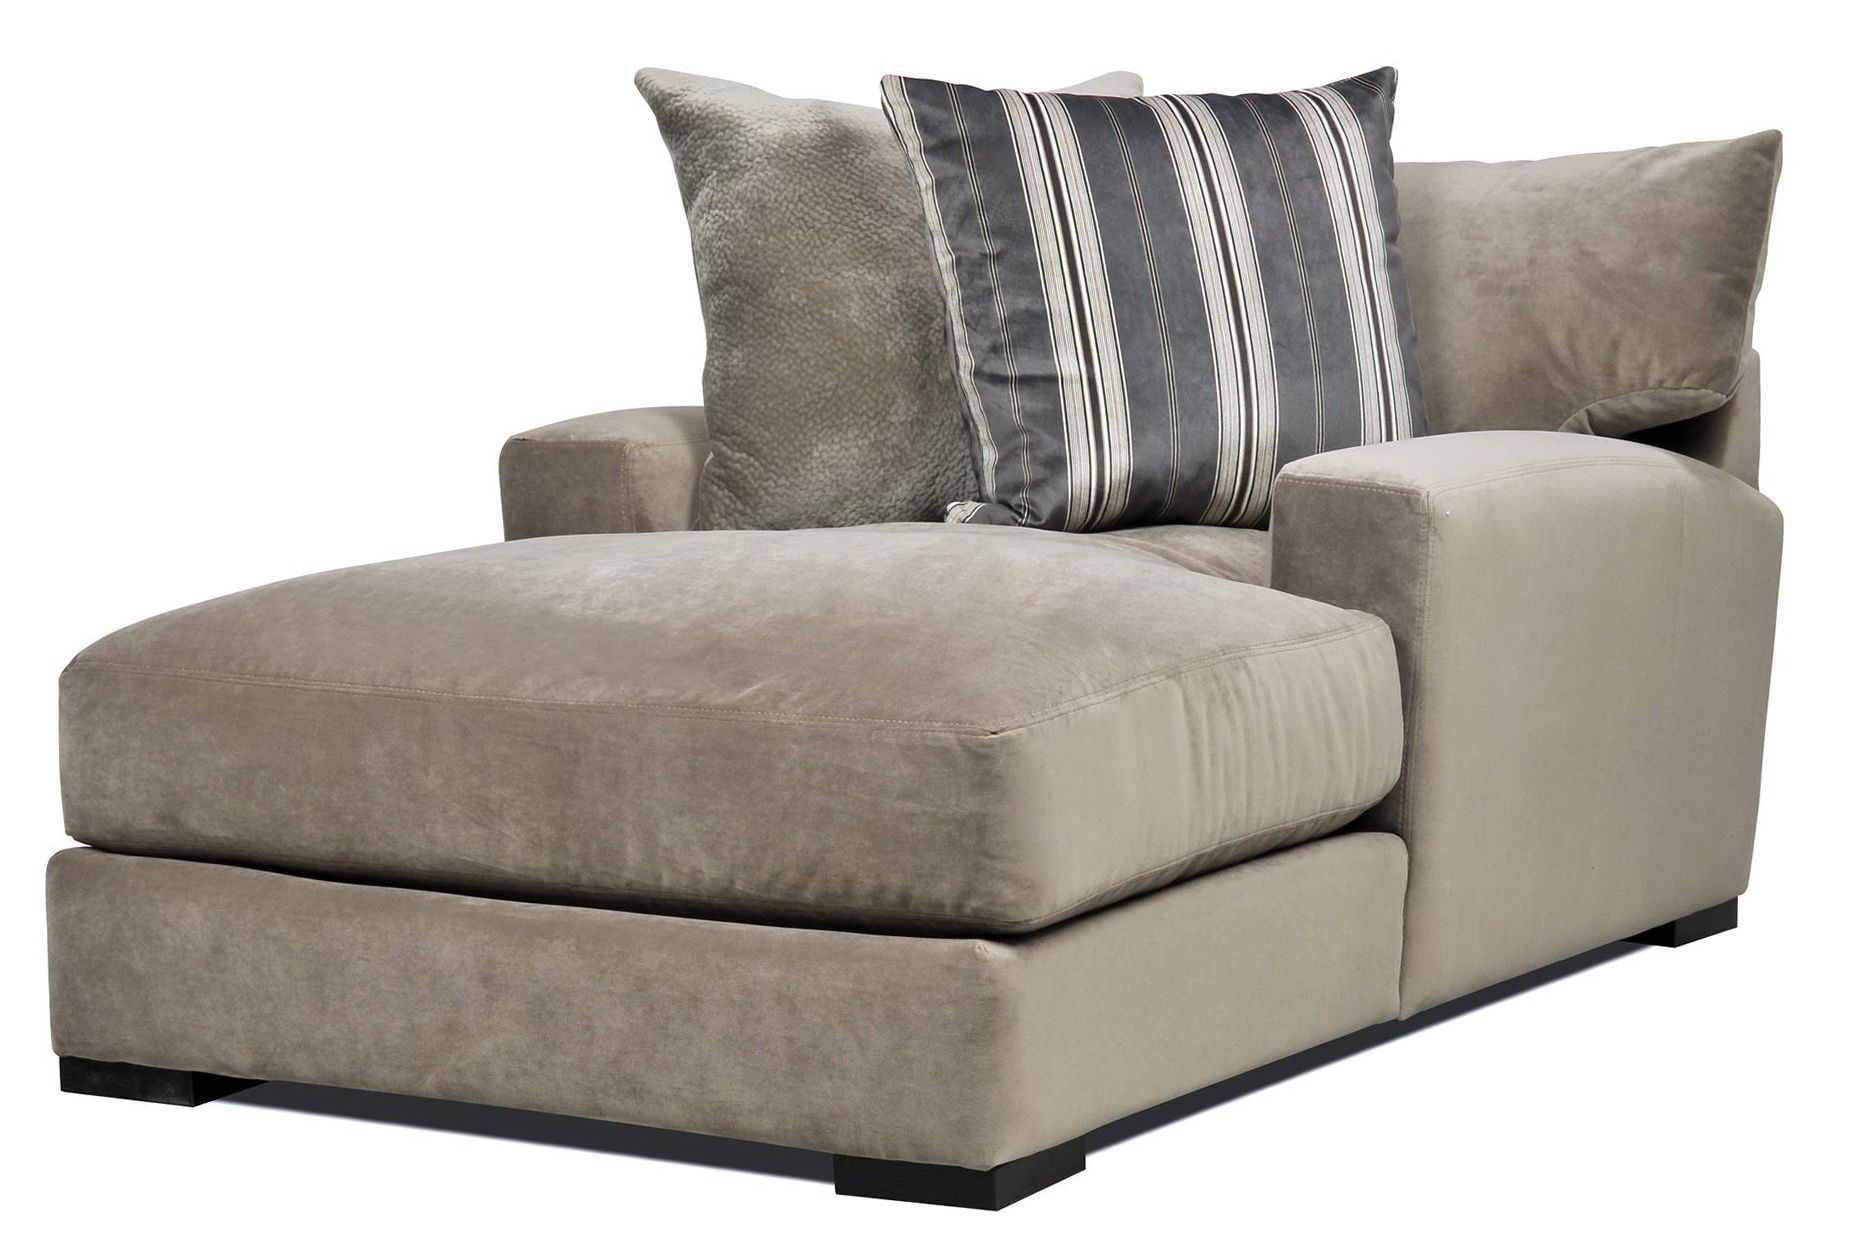 Sofa With Chaise Lounge Double Wide Chaise Lounge Indoor With 2 Cushions Chaise